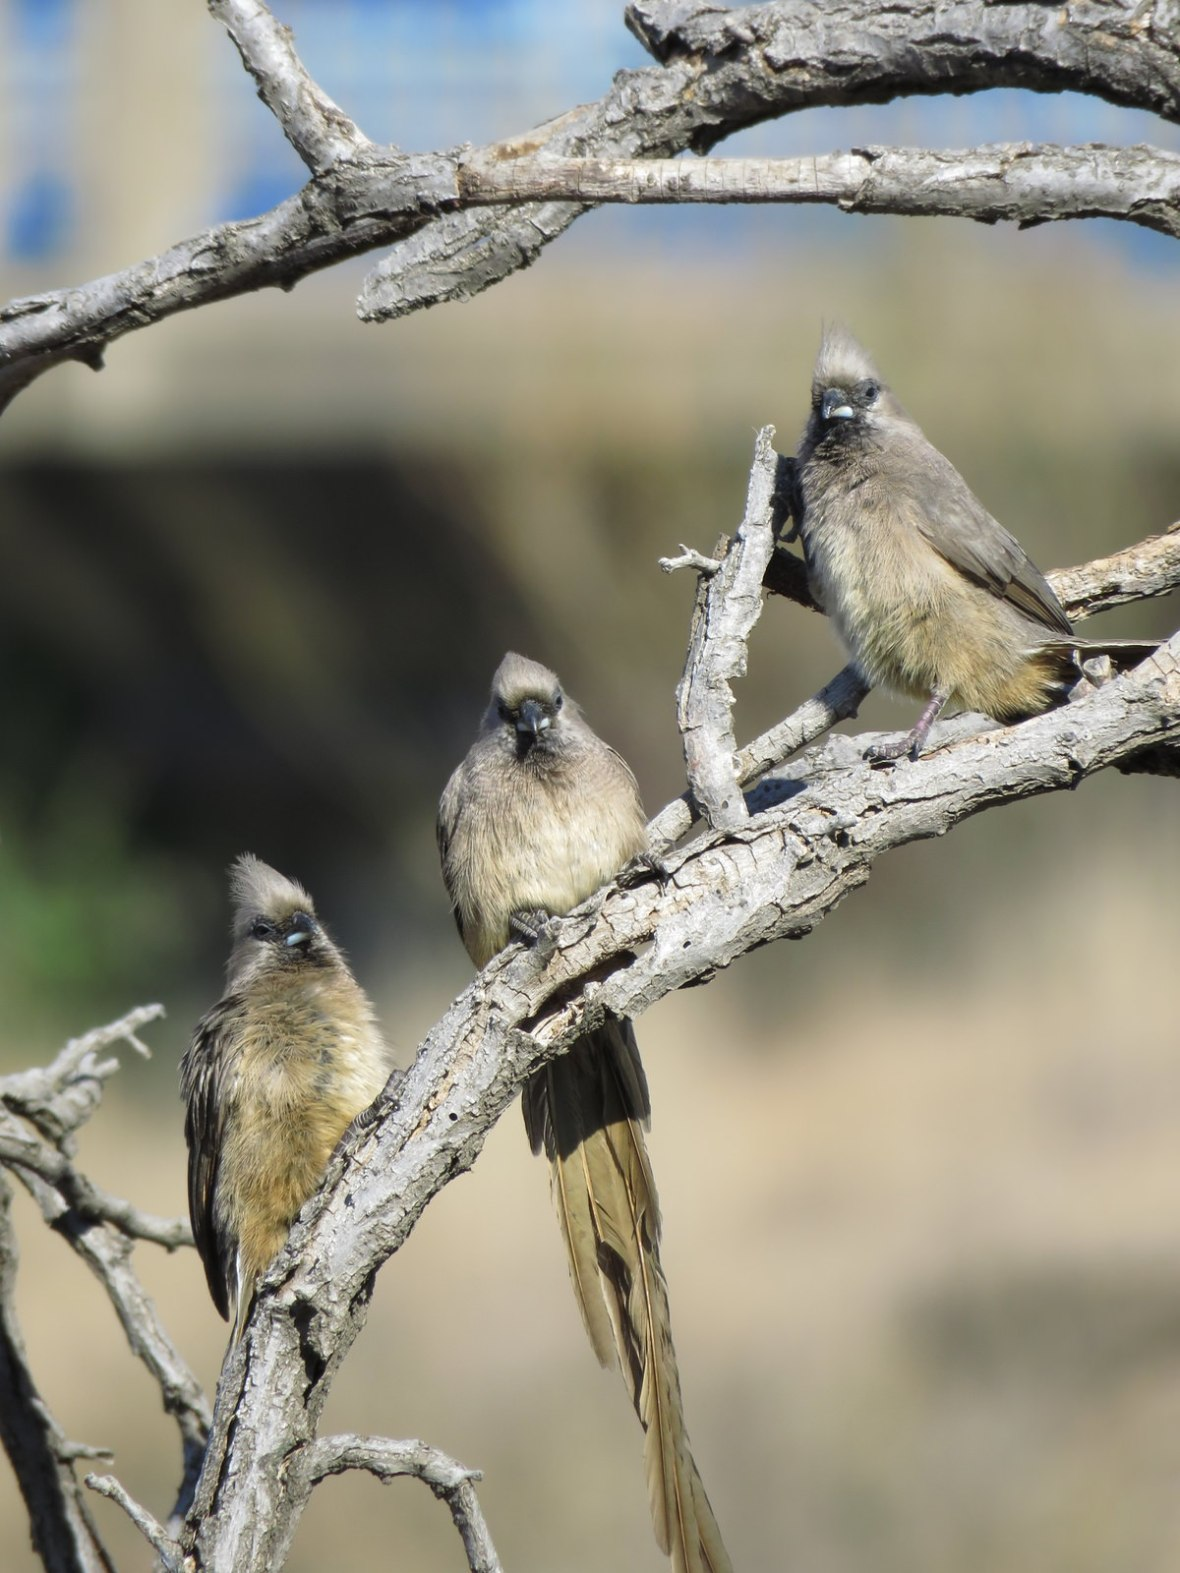 Three Mousebirds on a branch